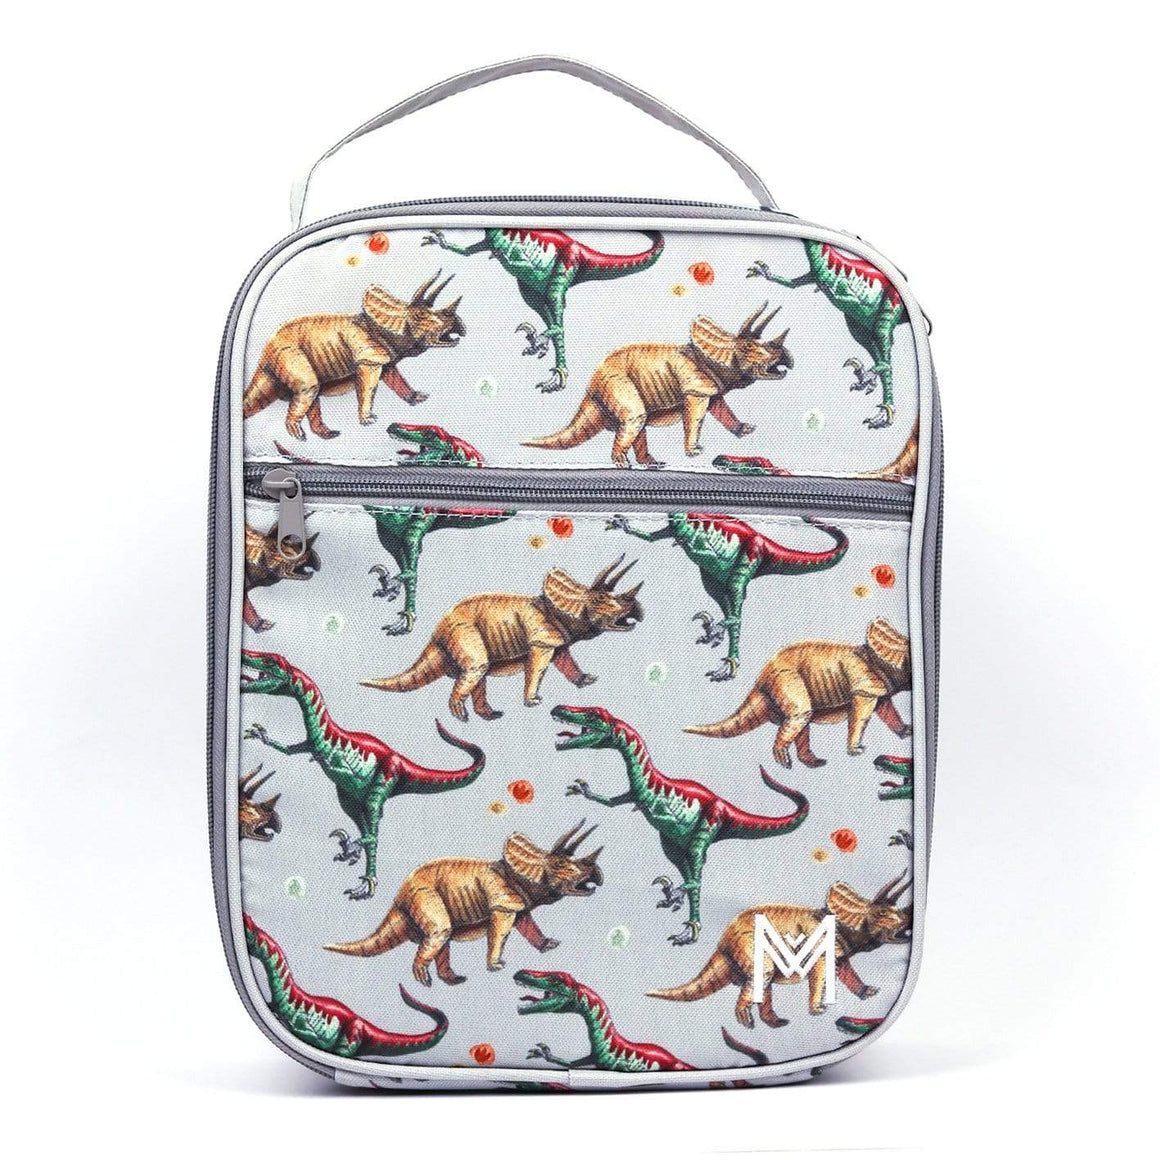 Montii Co Dinosaur lunch bag